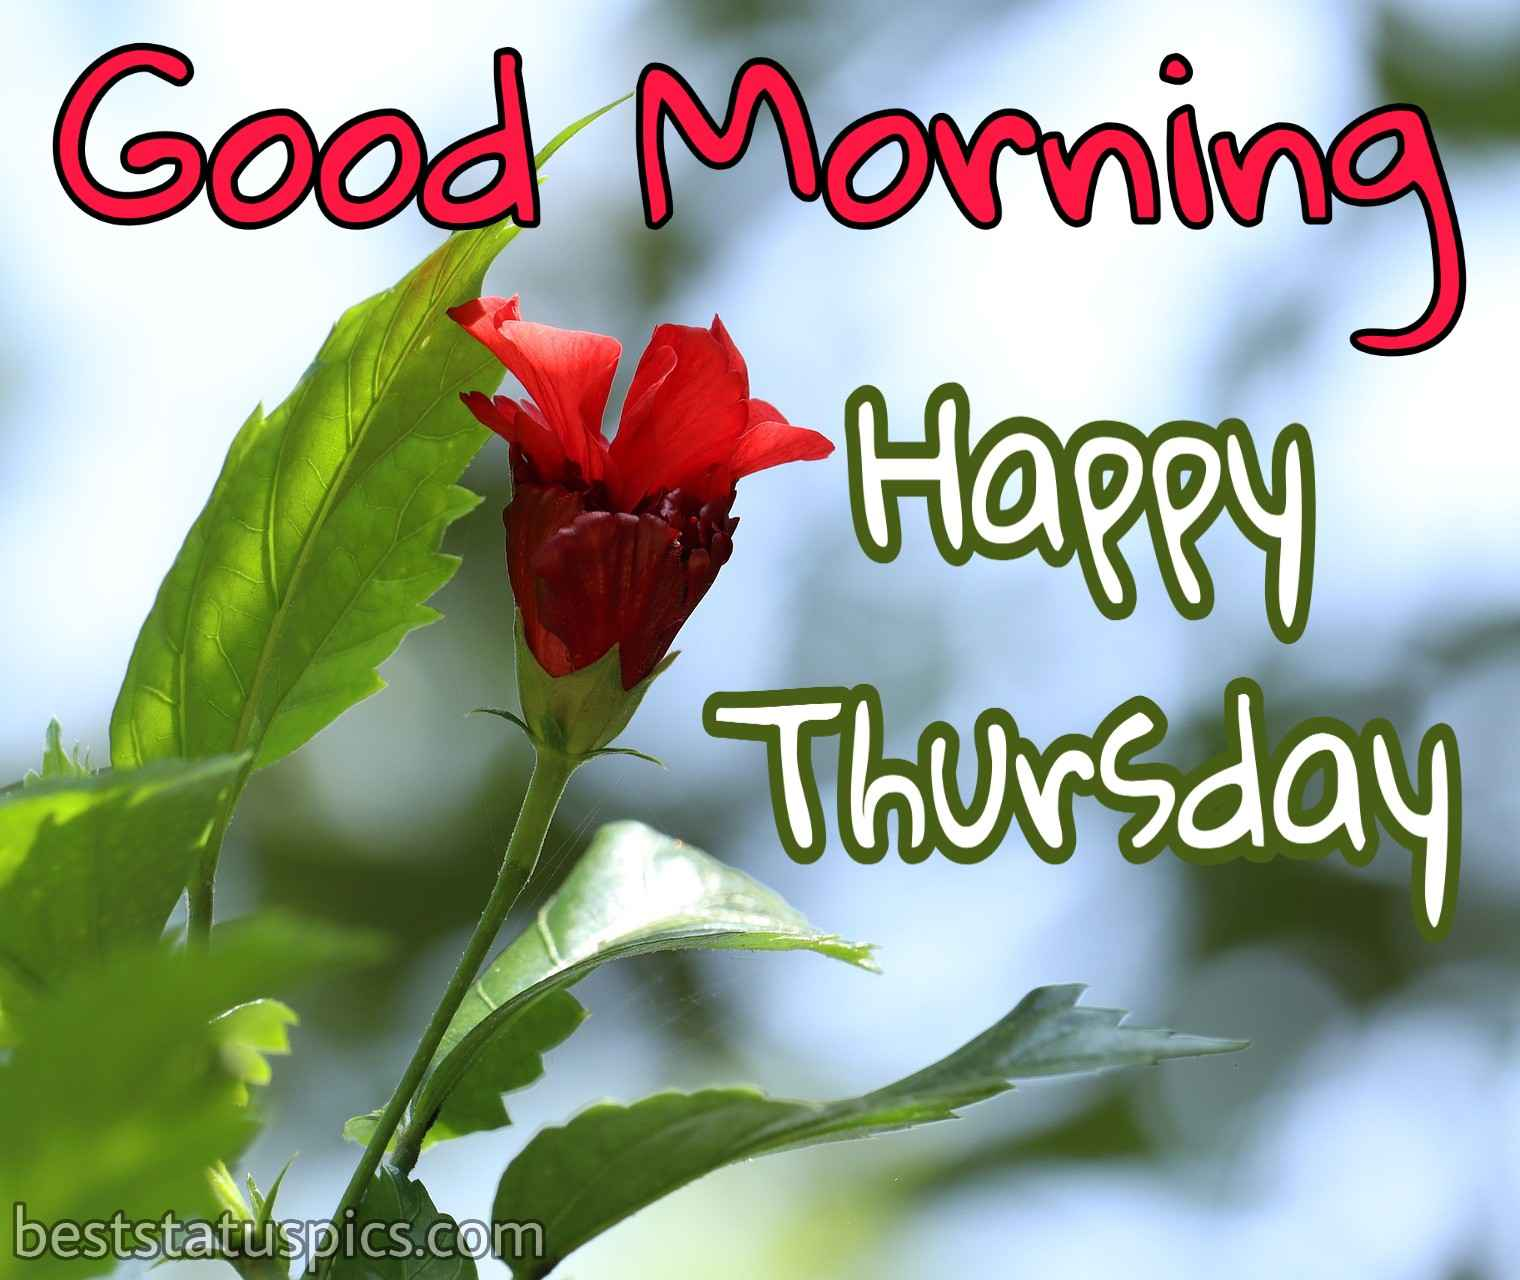 33 Good Morning Happy Thursday Images Wishes Quotes Best Status Pics